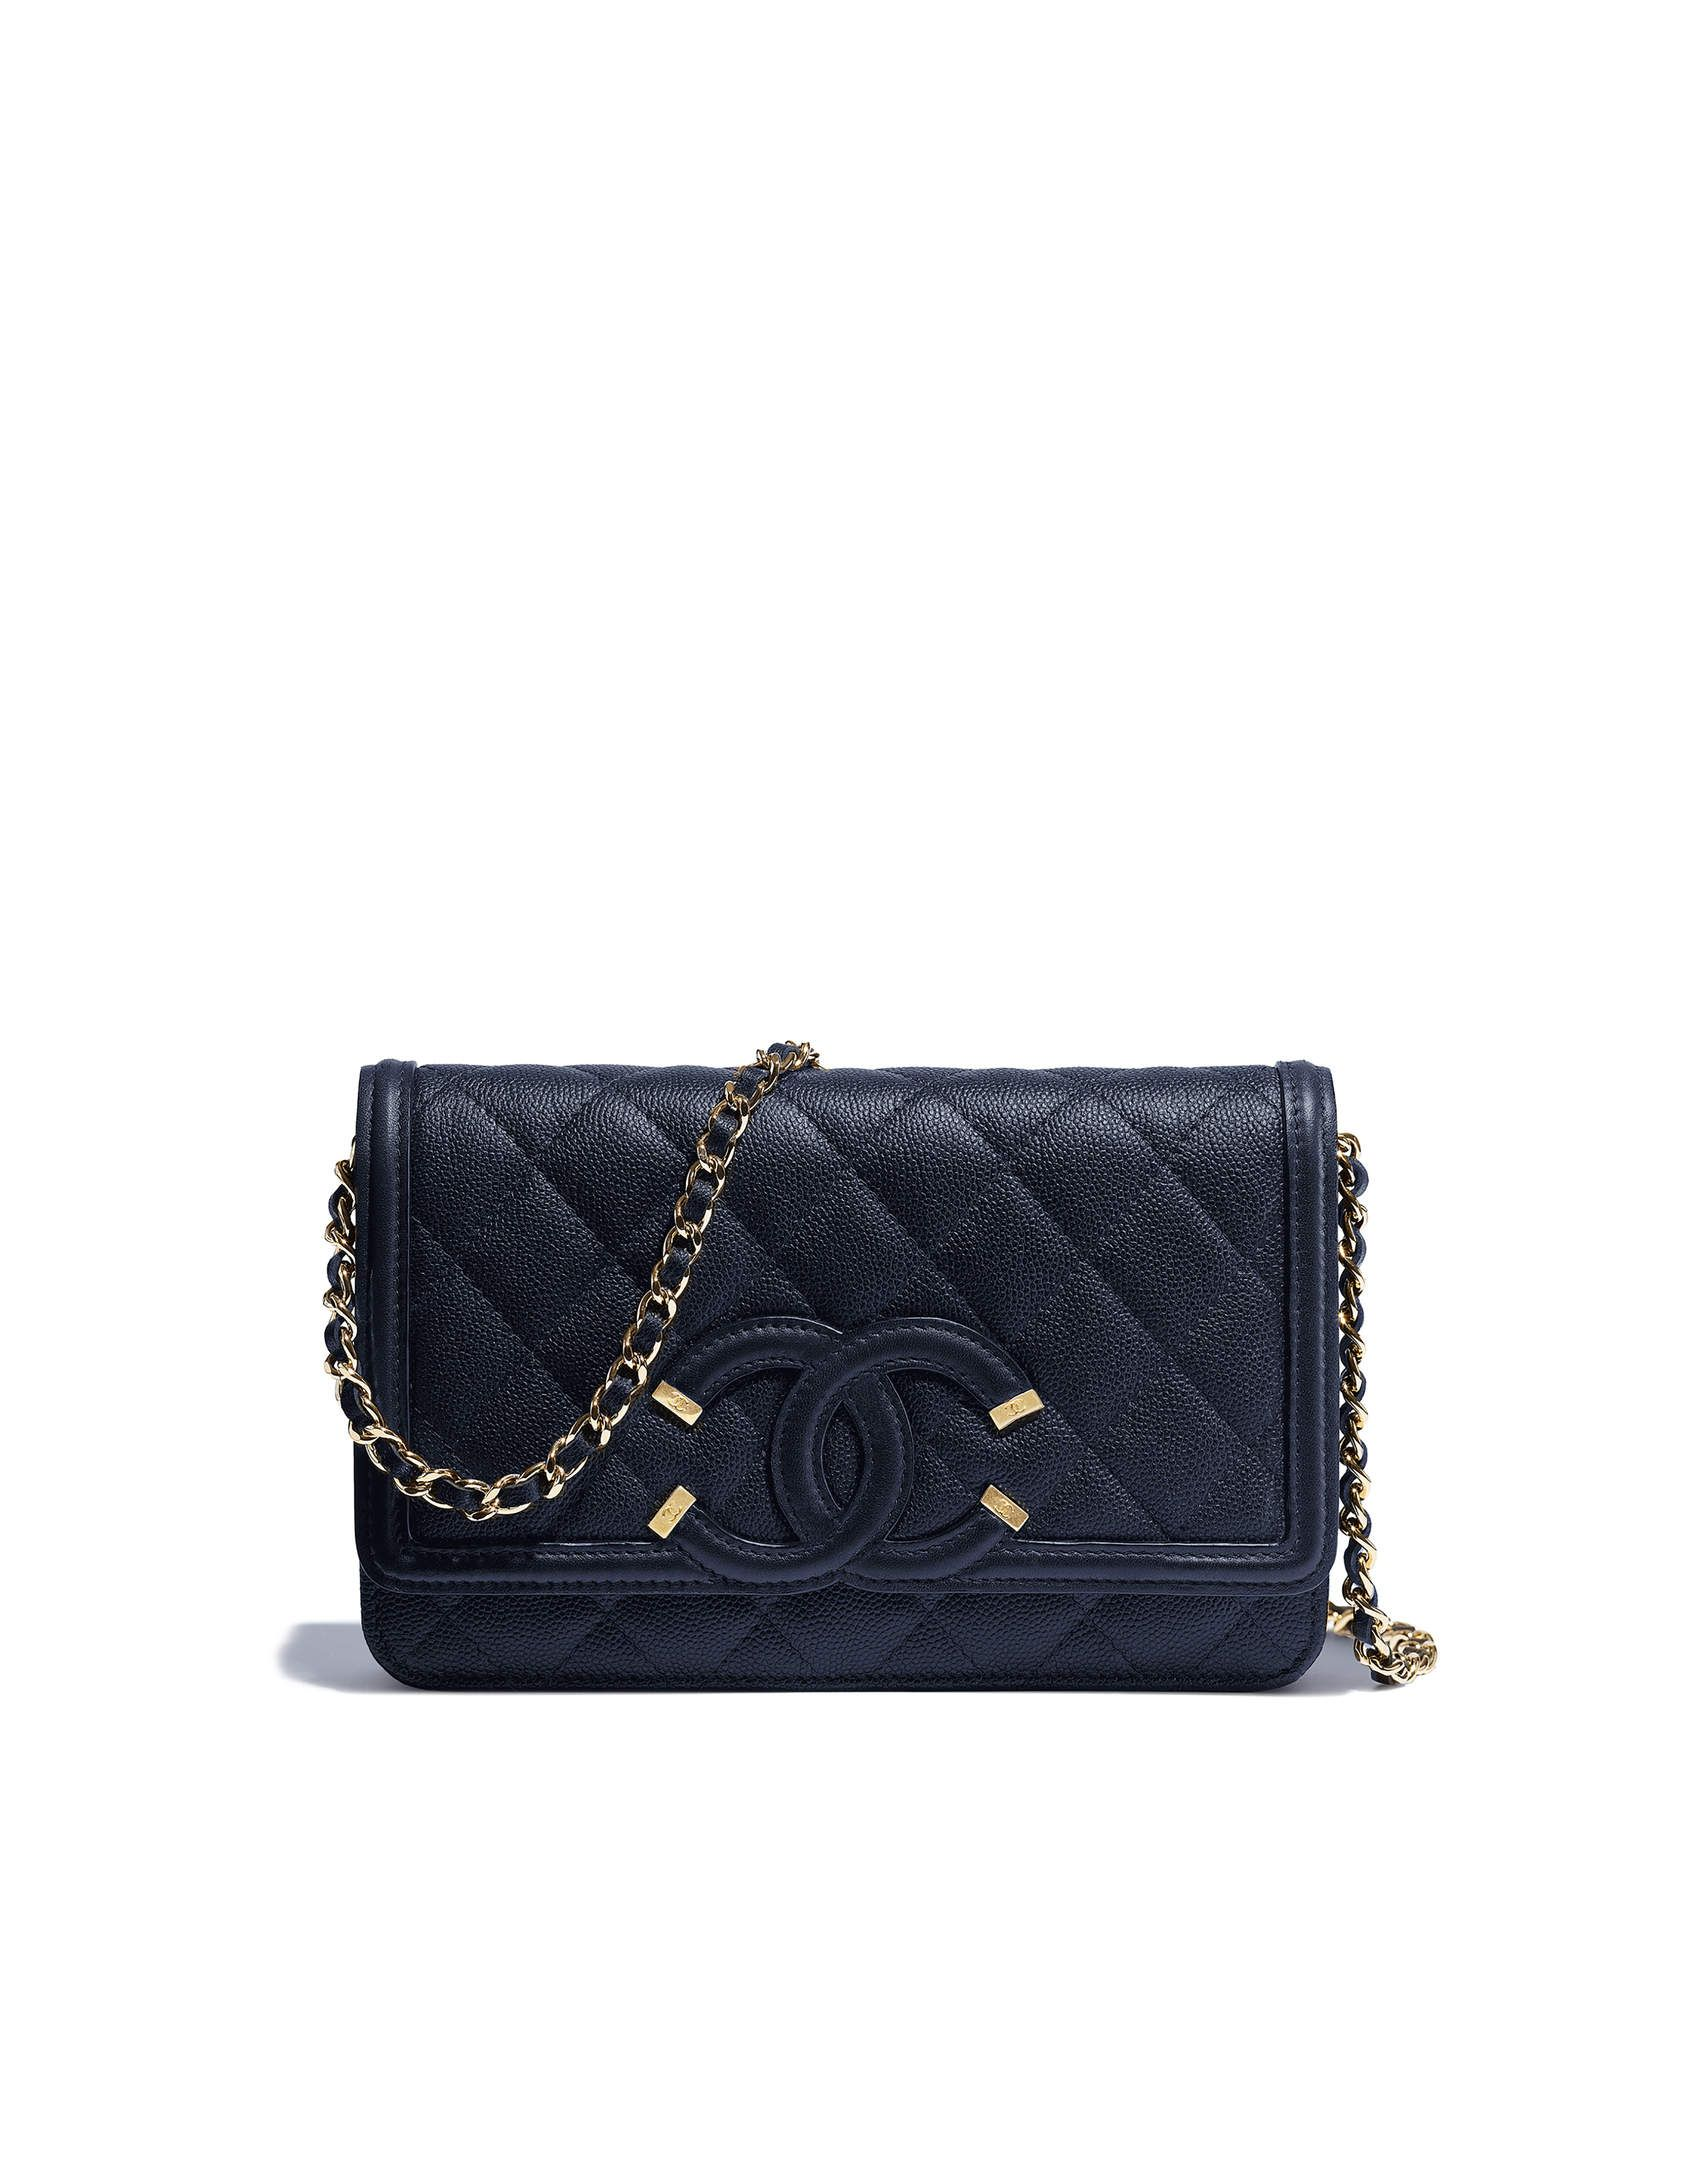 51942af1c241db Wallet on chain, grained calfskin & gold-tone metal-navy blue - CHANEL $2500